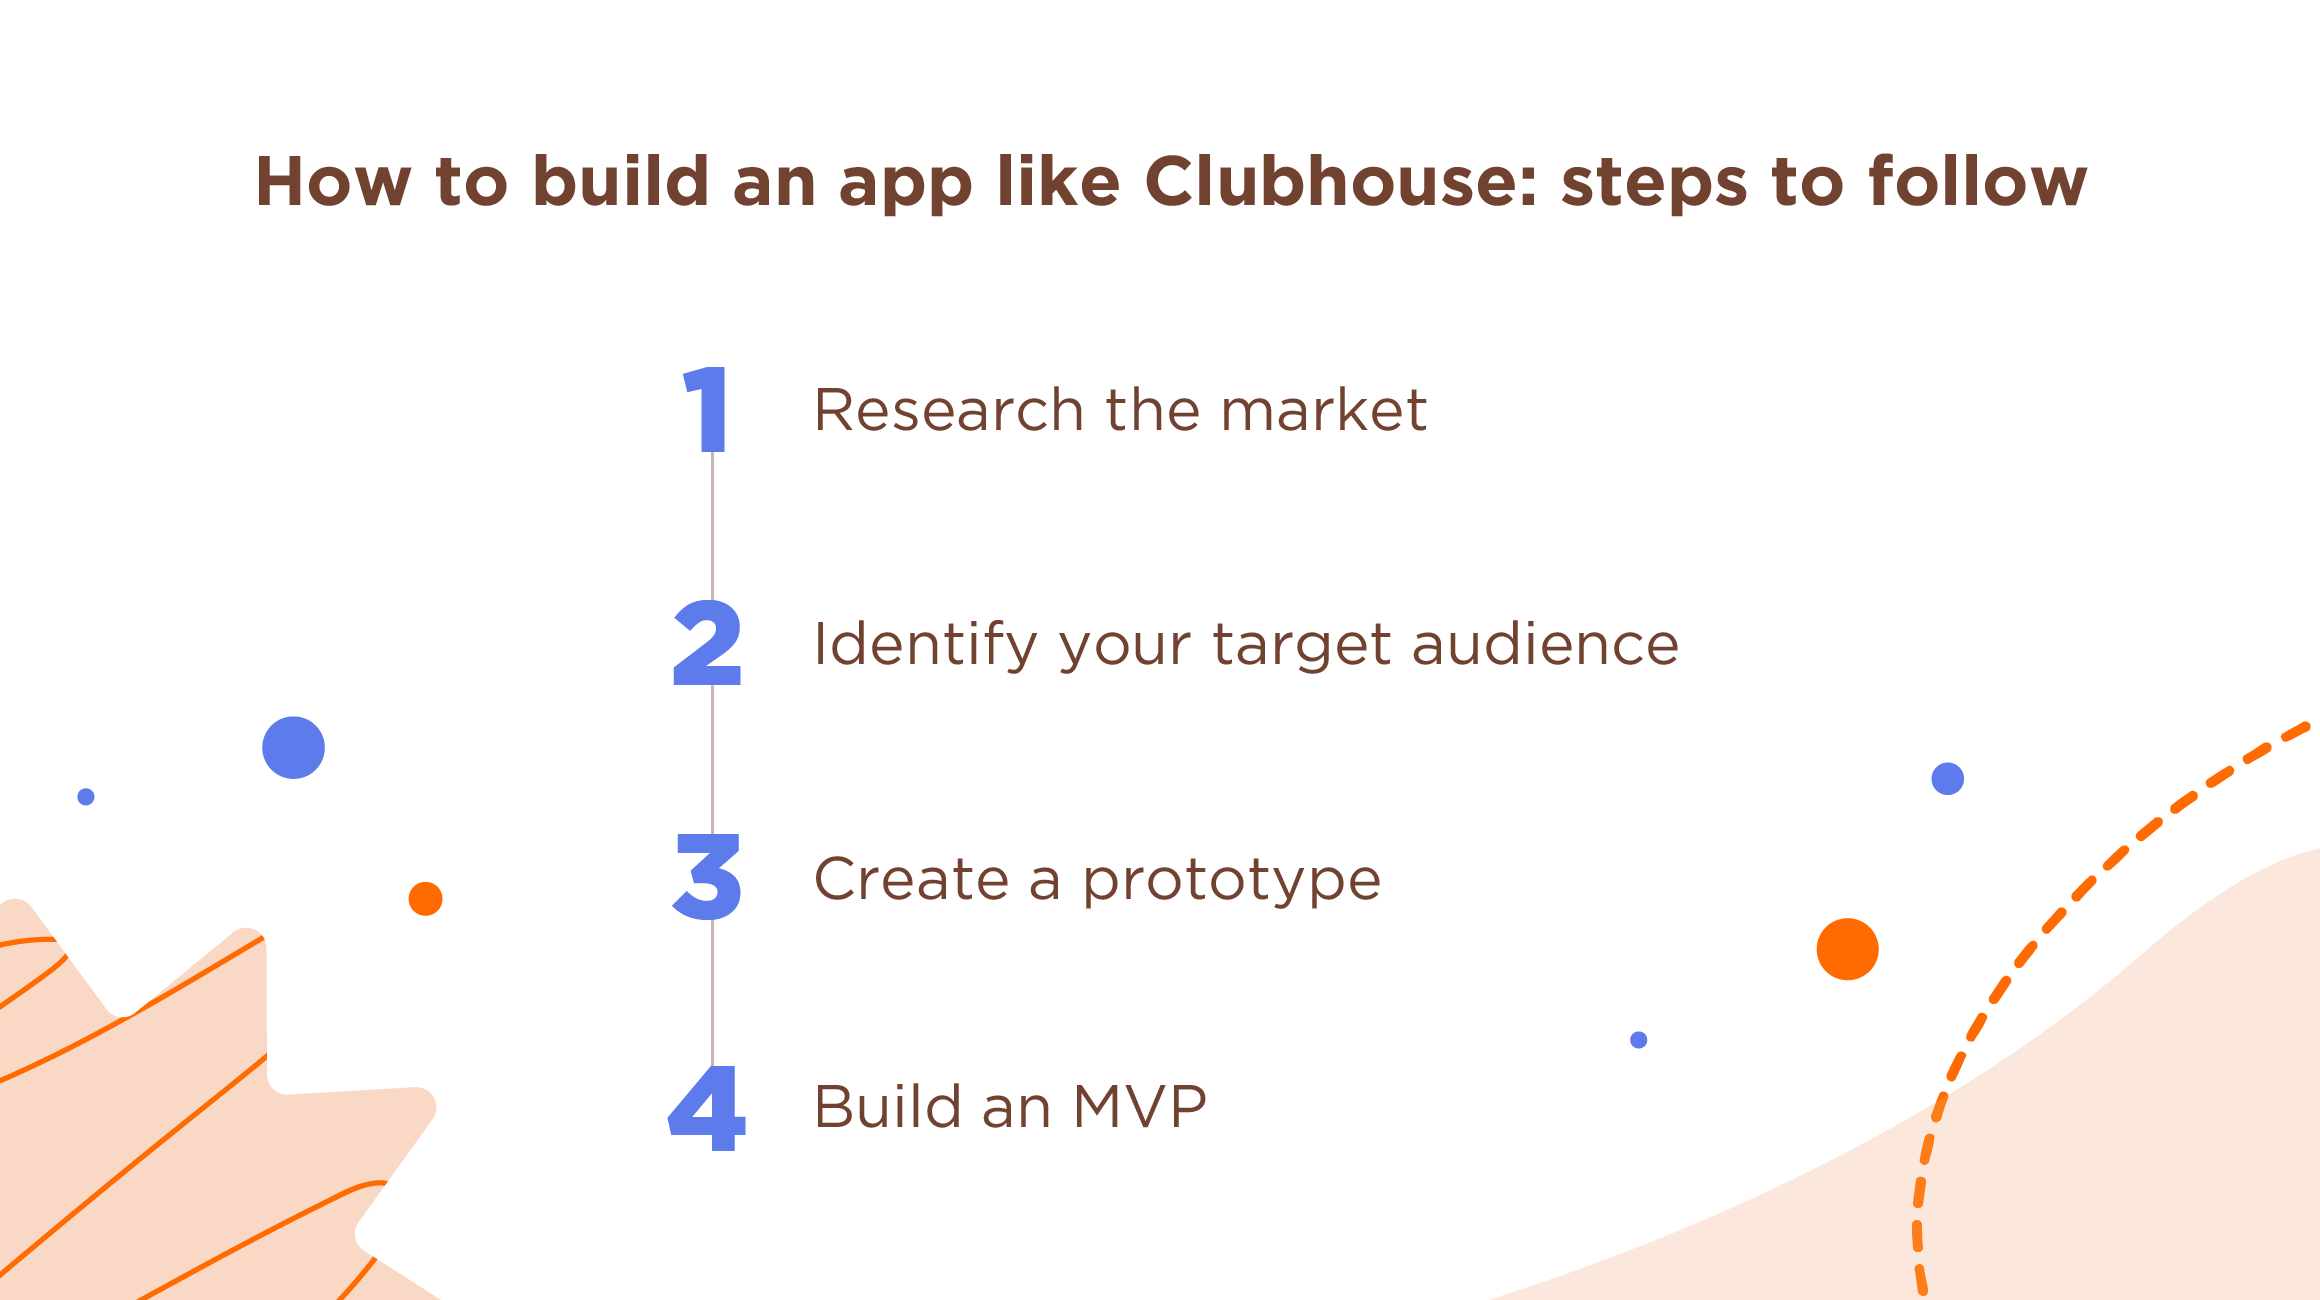 App like Clubhouse development stages